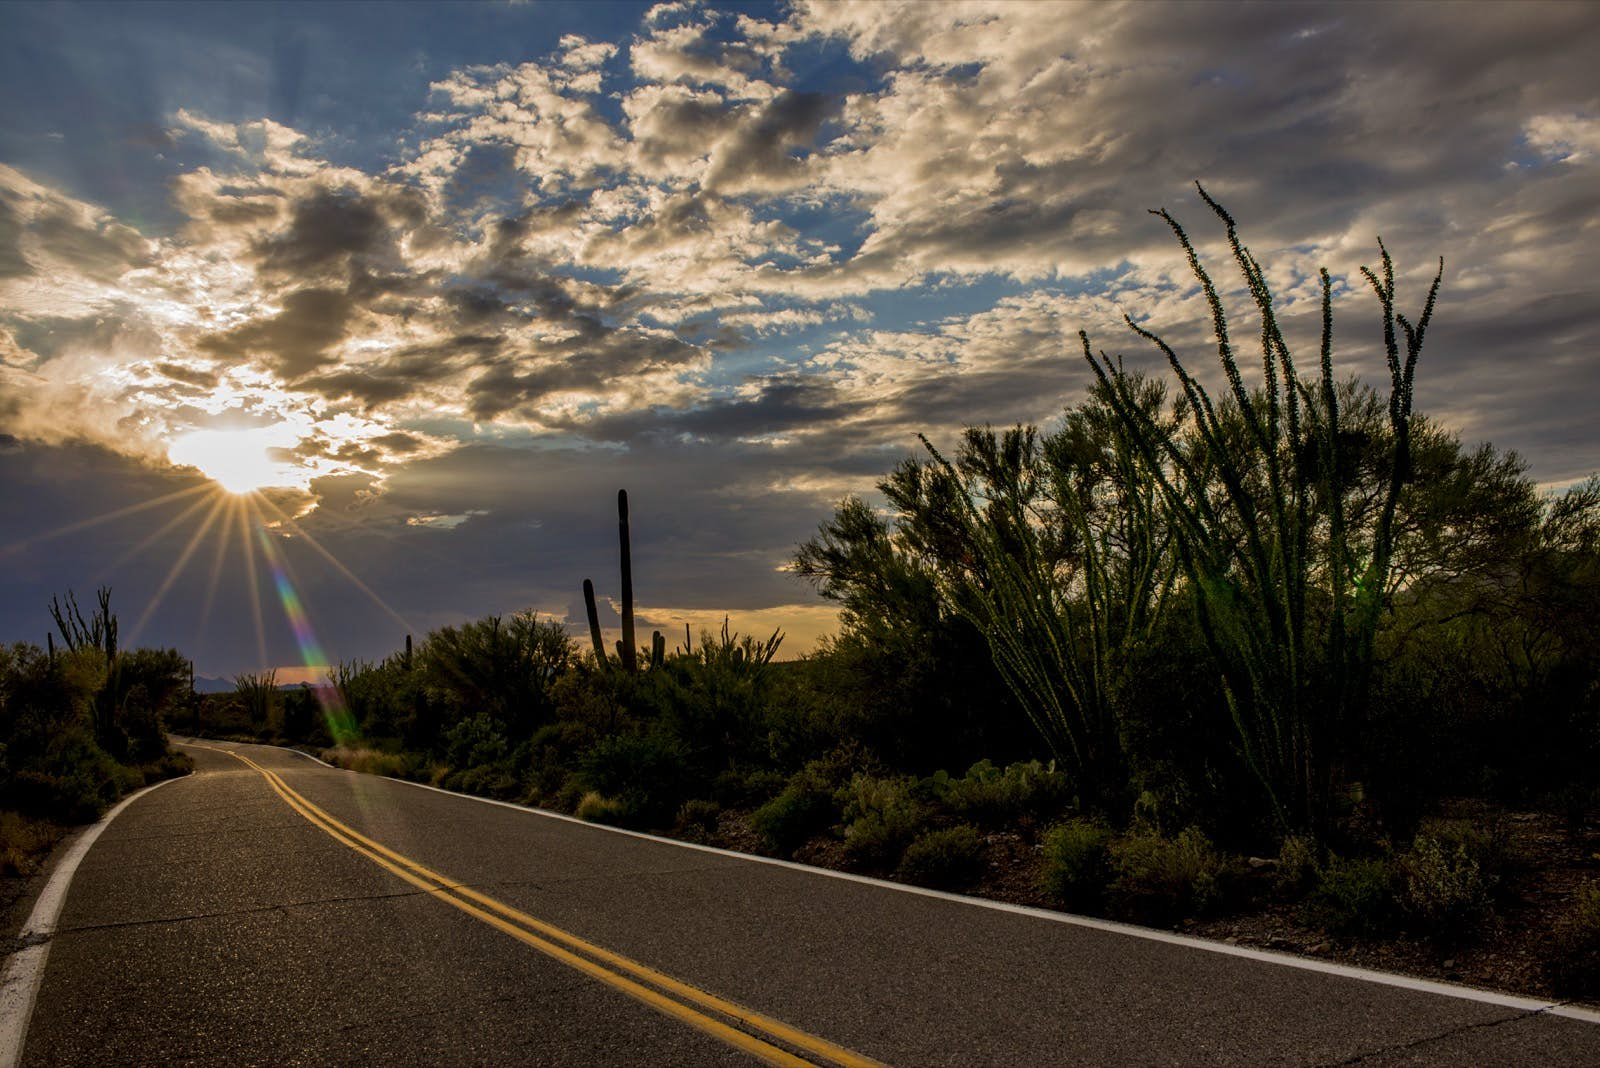 A road leads through a cactus field while the sun lights up interesting clouds. The Tempest is the perfect audiobooks for US road trip out west selection.